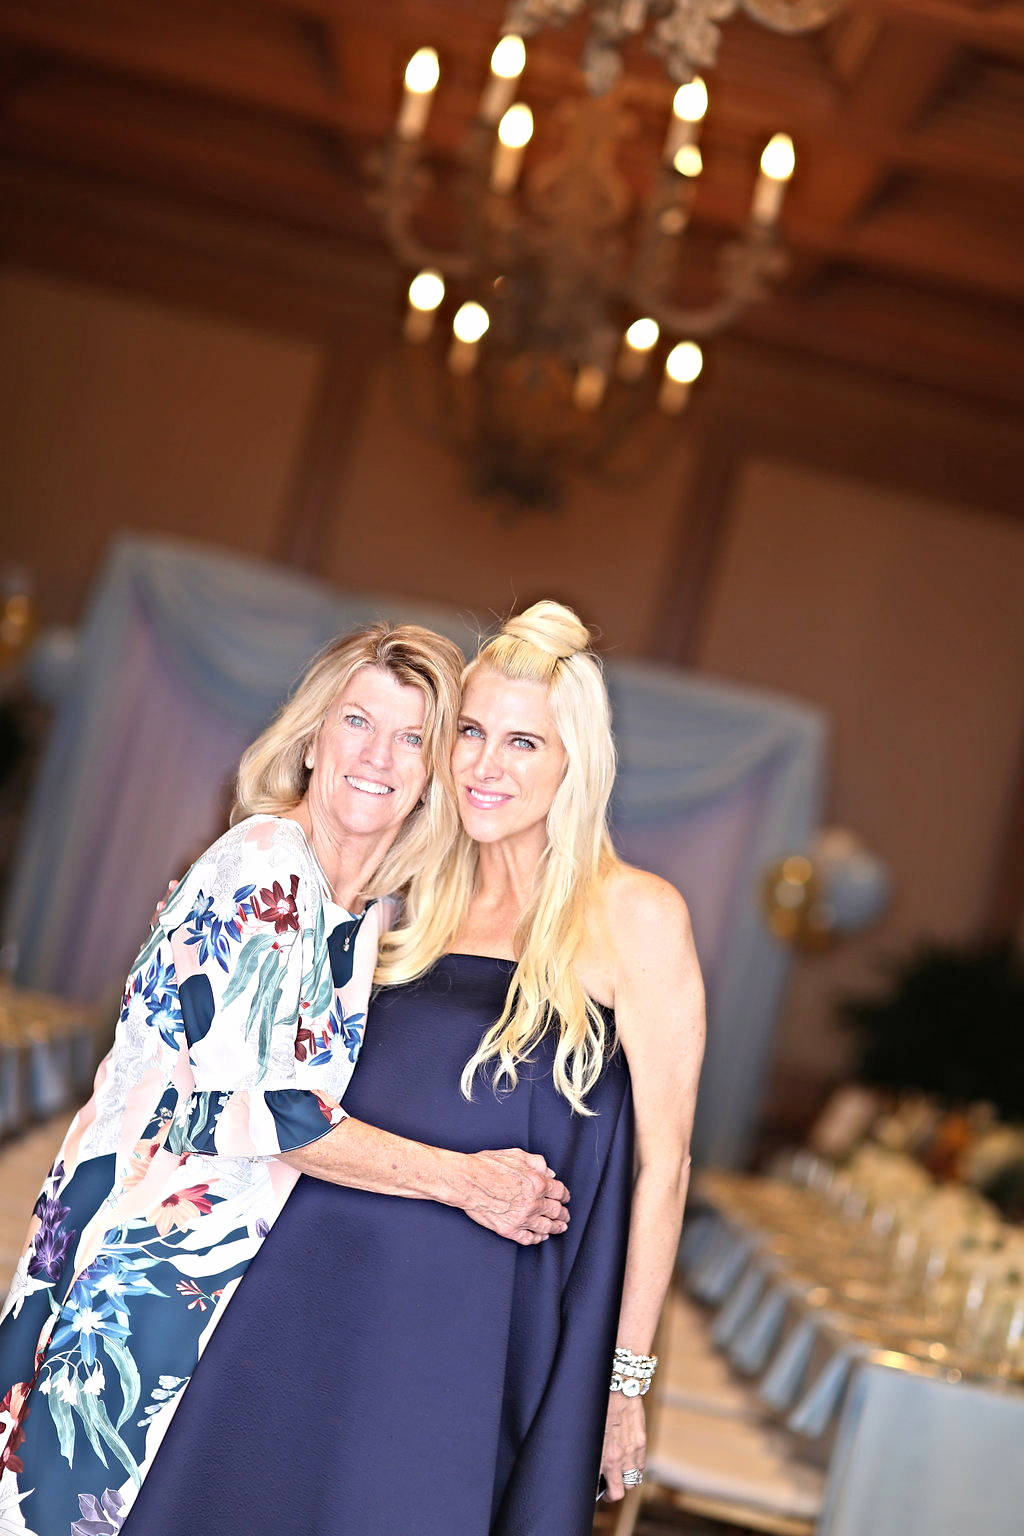 My mama and fellow party planner and one of my favorite people in the world!!❤️